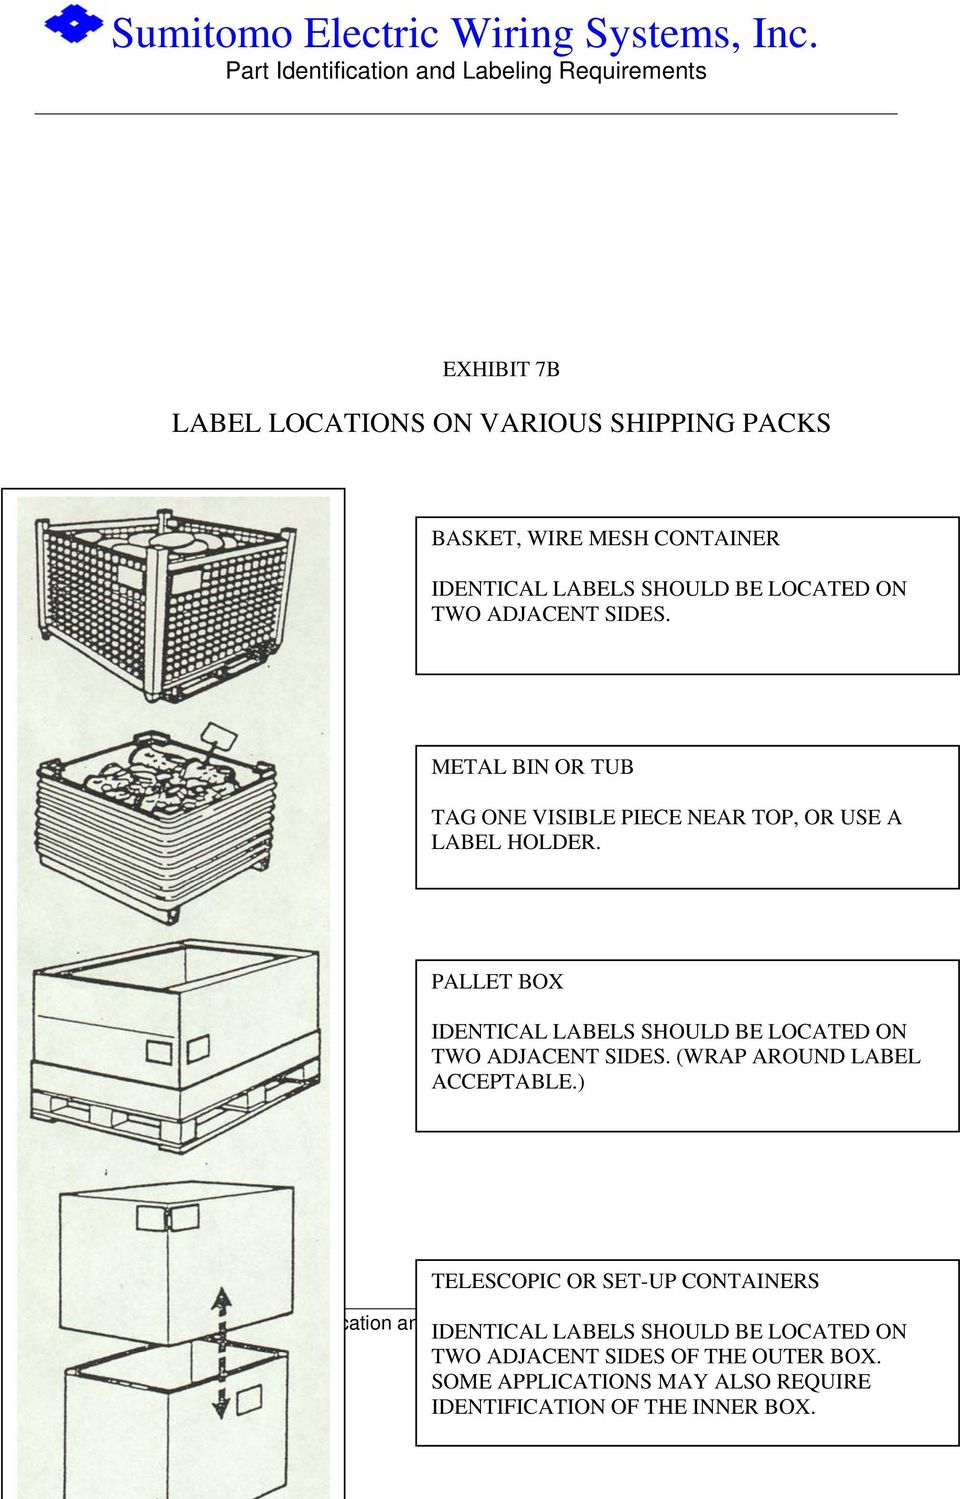 PALLET BOX IDENTICAL LABELS SHOULD BE LOCATED ON TWO ADJACENT SIDES. (WRAP AROUND LABEL ACCEPTABLE.